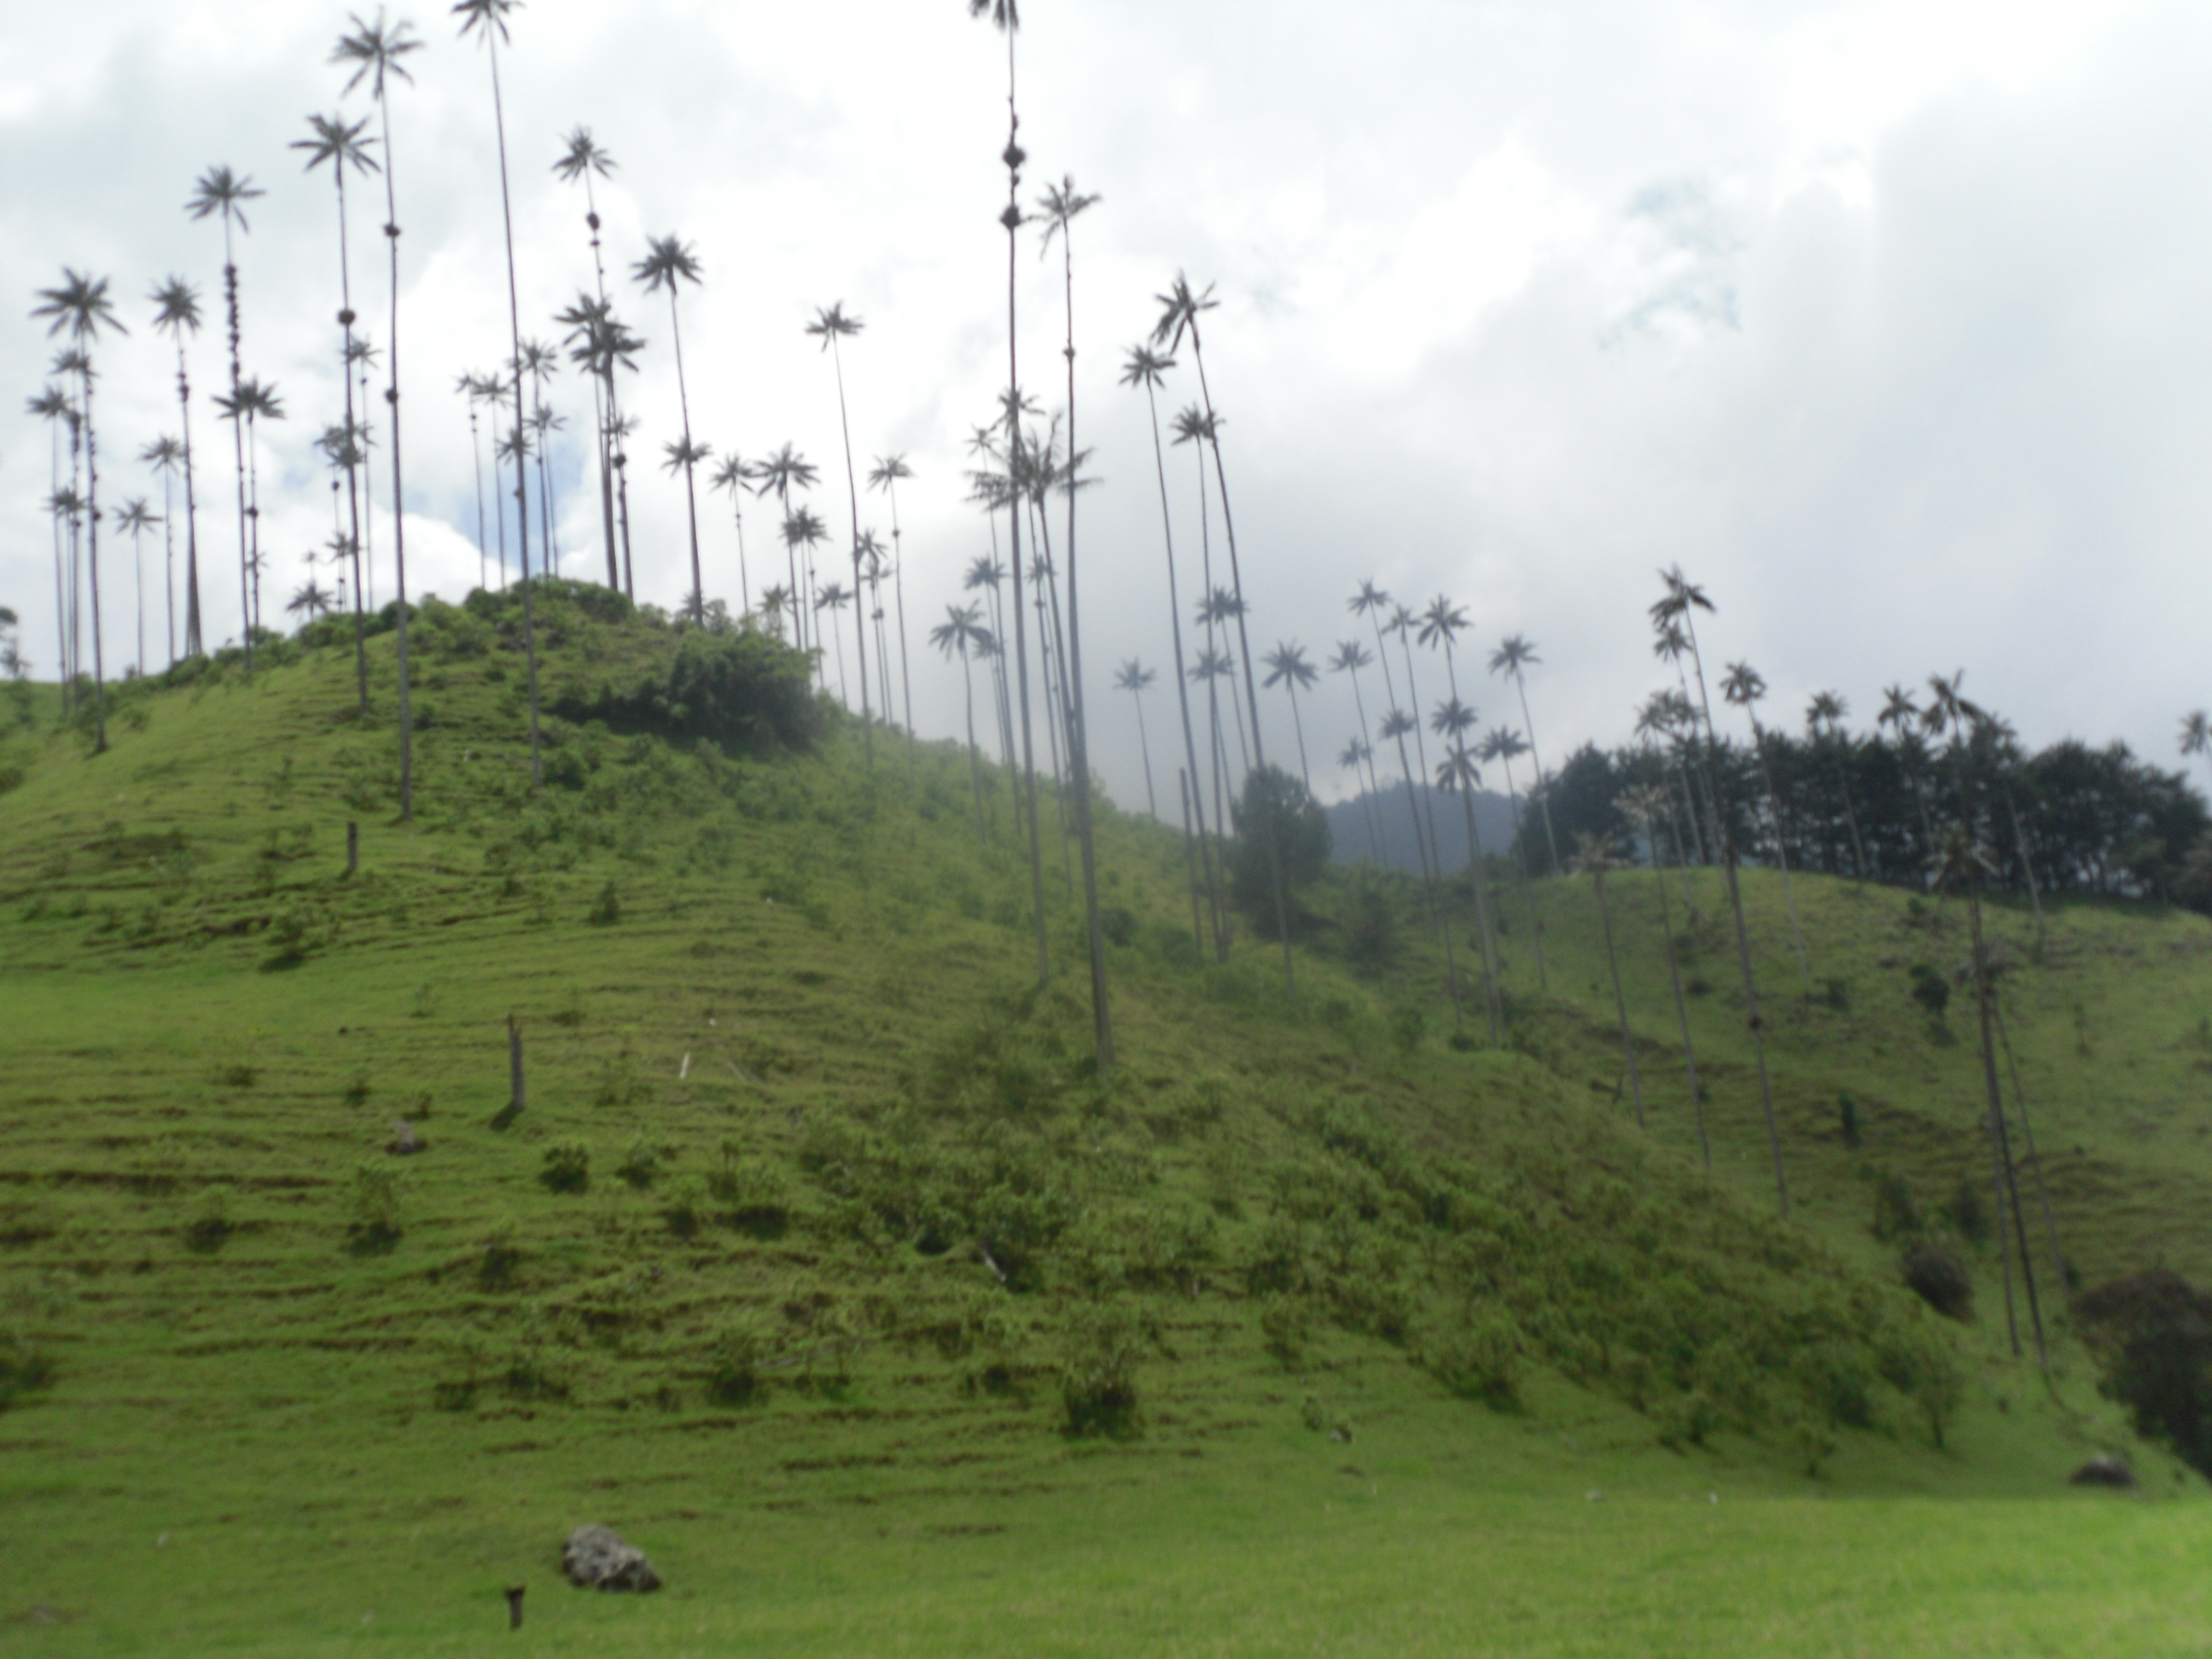 Wax Palms of the Cocora Valley in the Coffee Country of Colombia